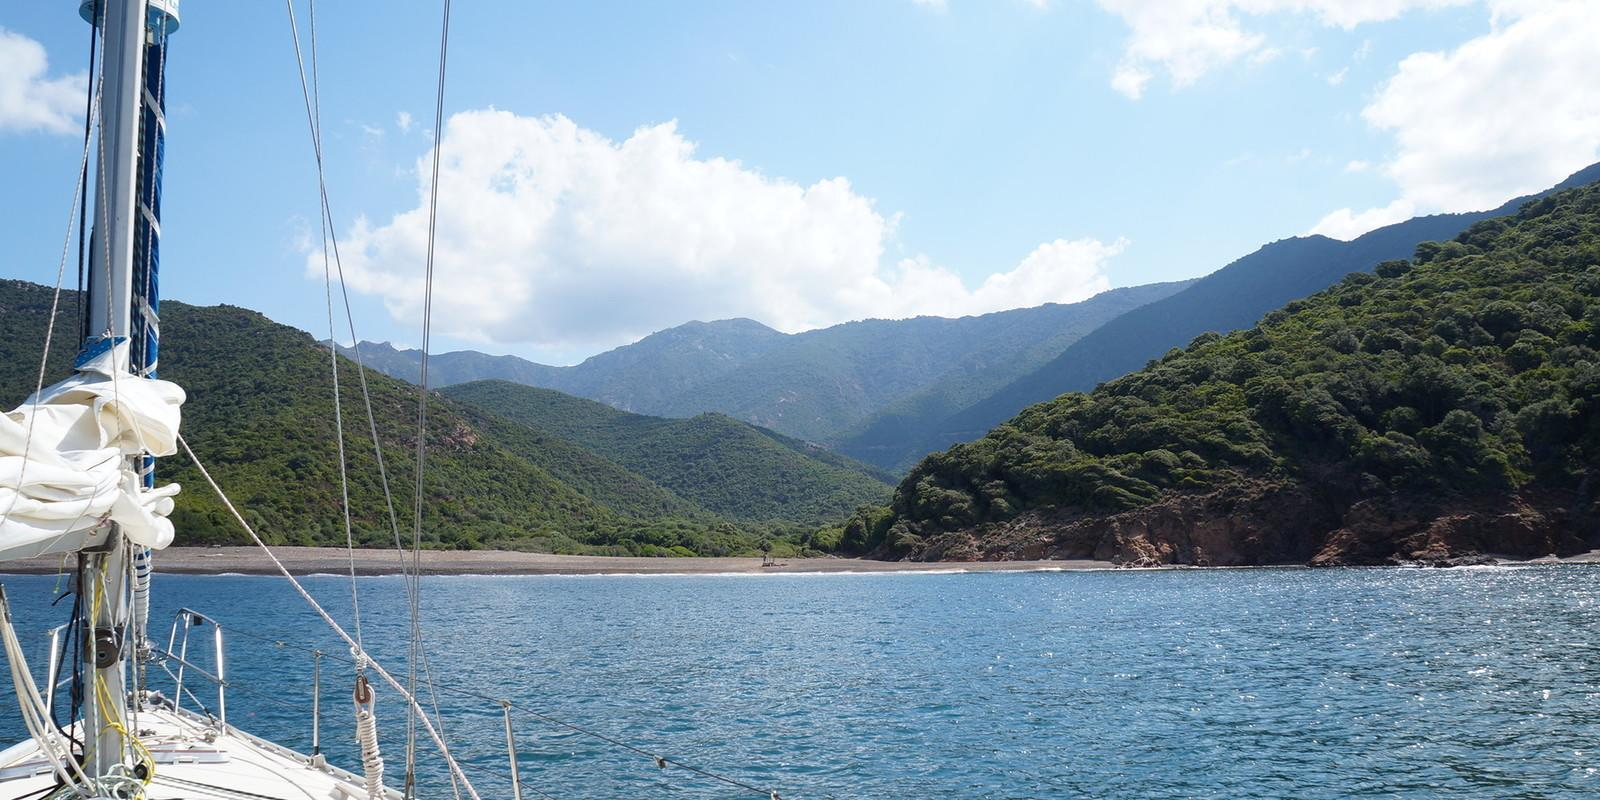 Sailing course, Relaxation and learning in Corsica!